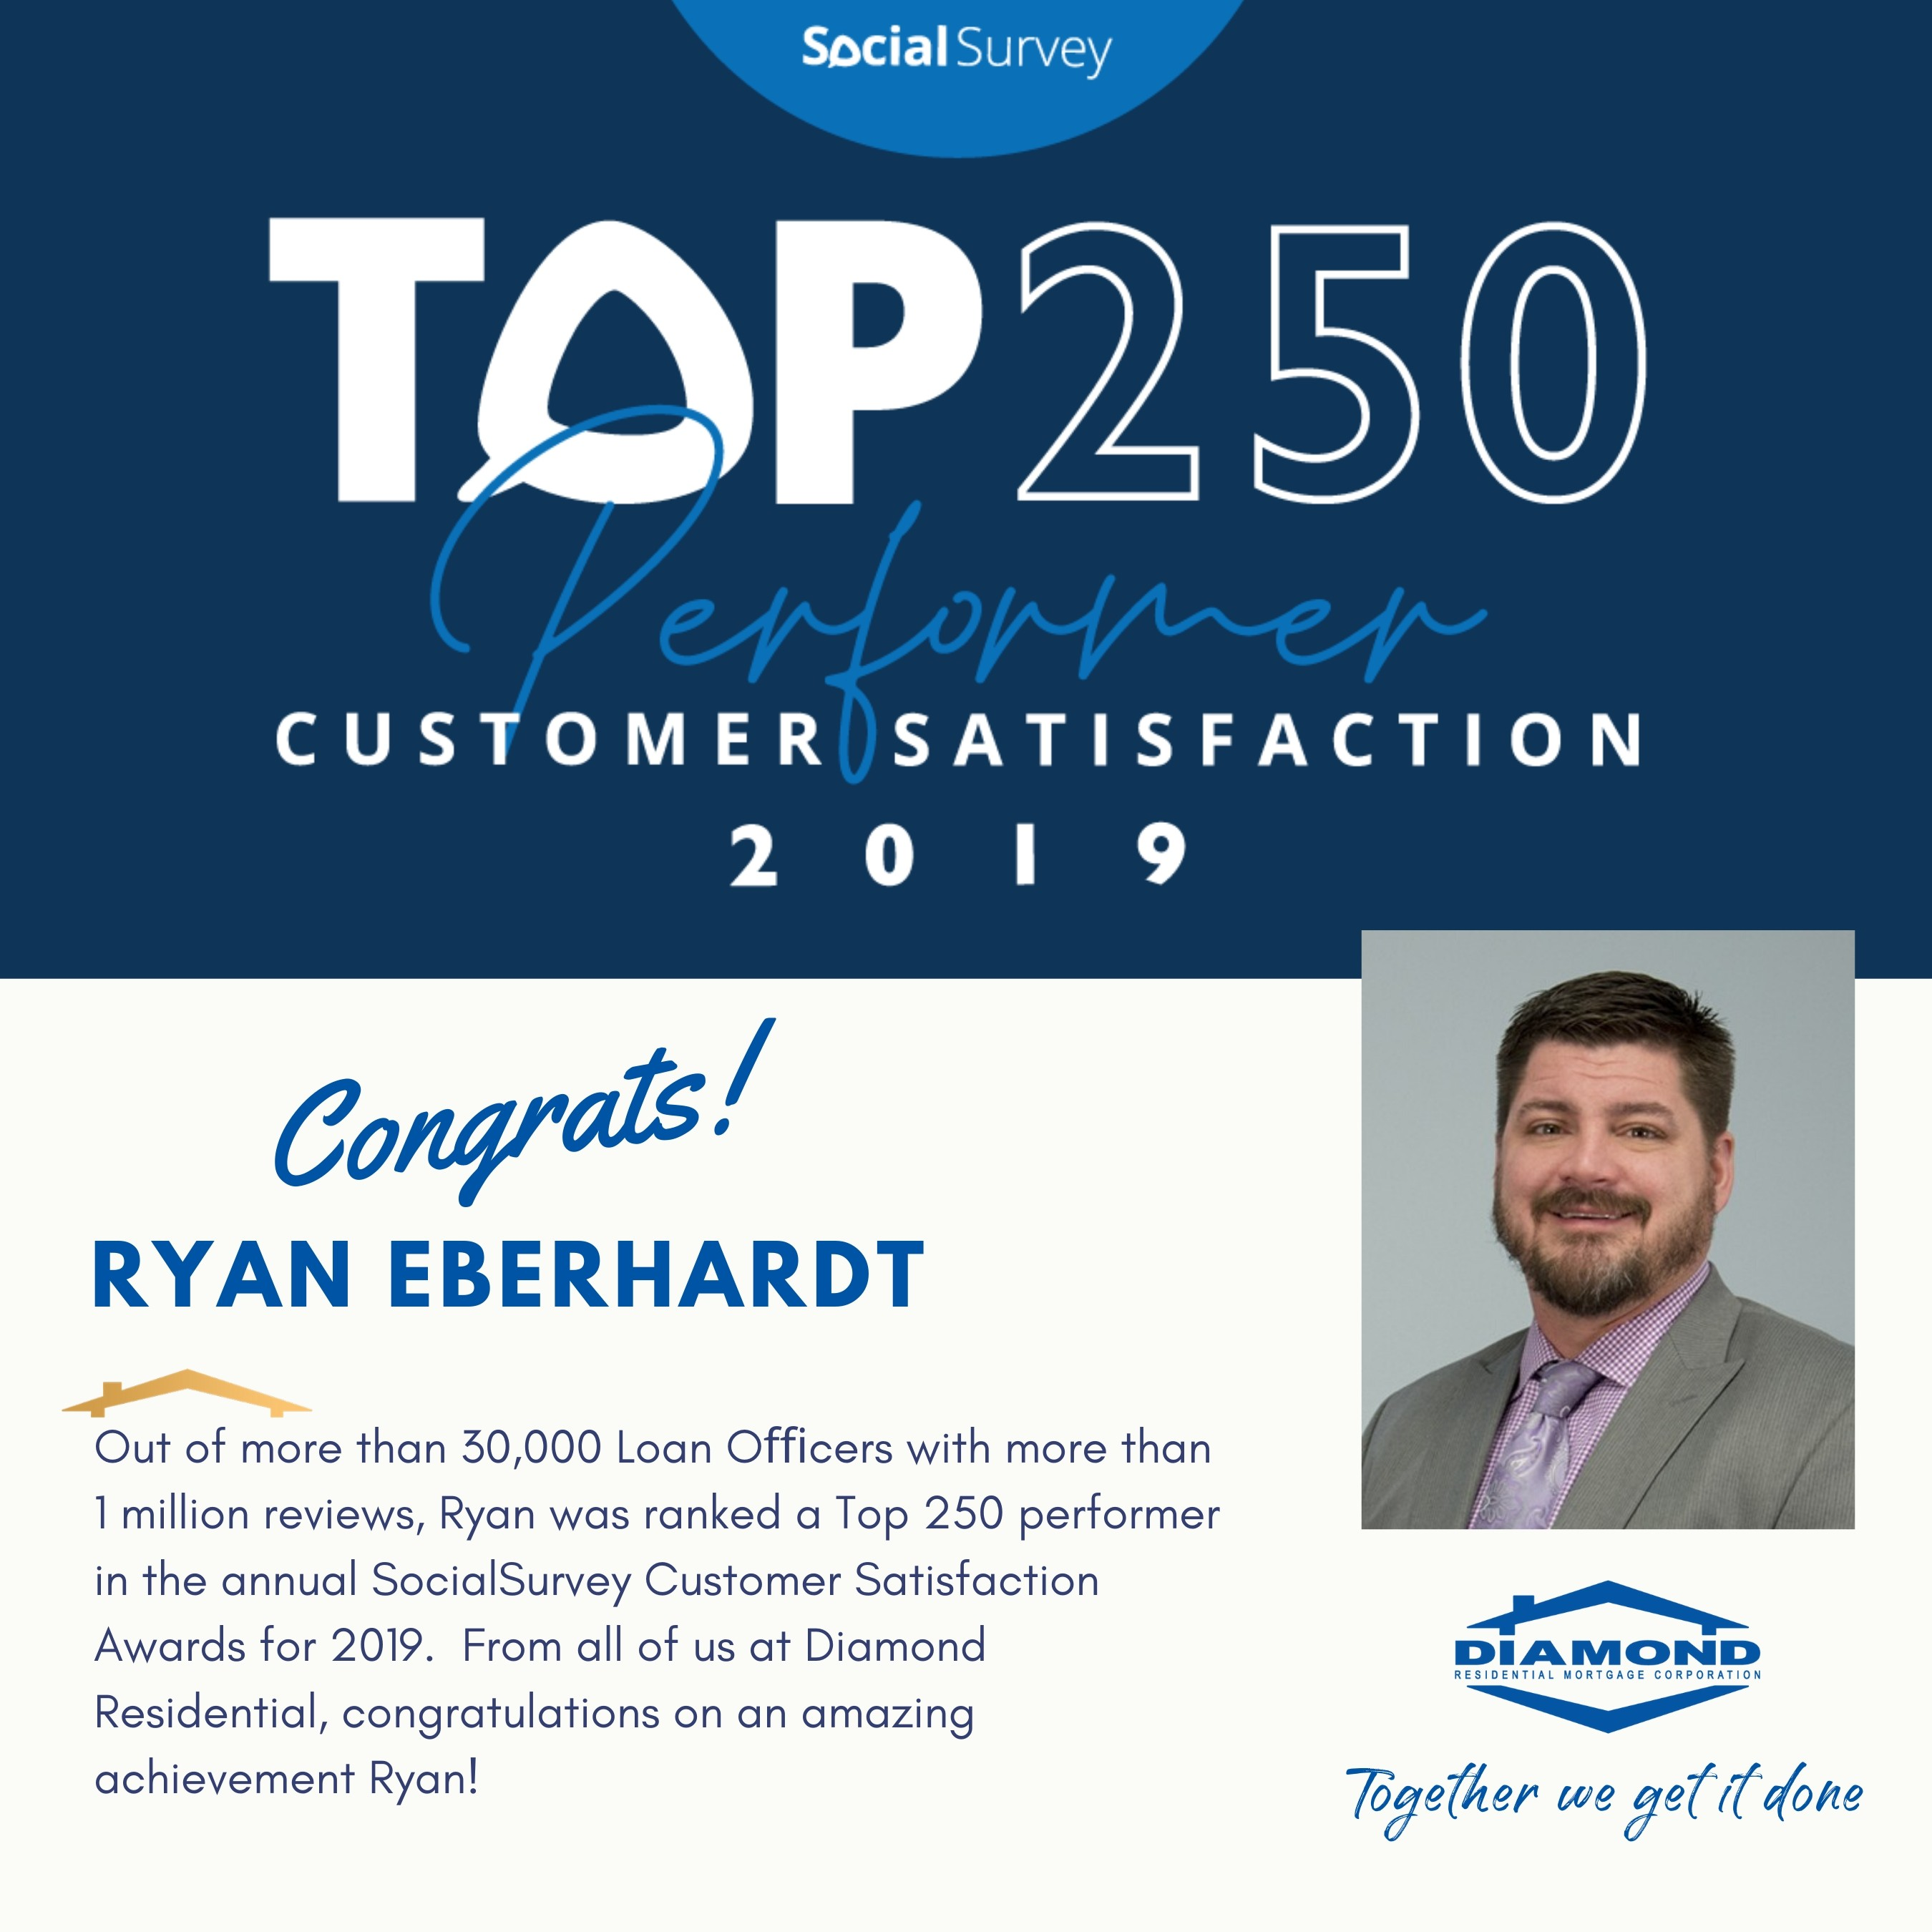 Ryan Eberhardt named Top 250 Originators in 2019 by SocialSurvey